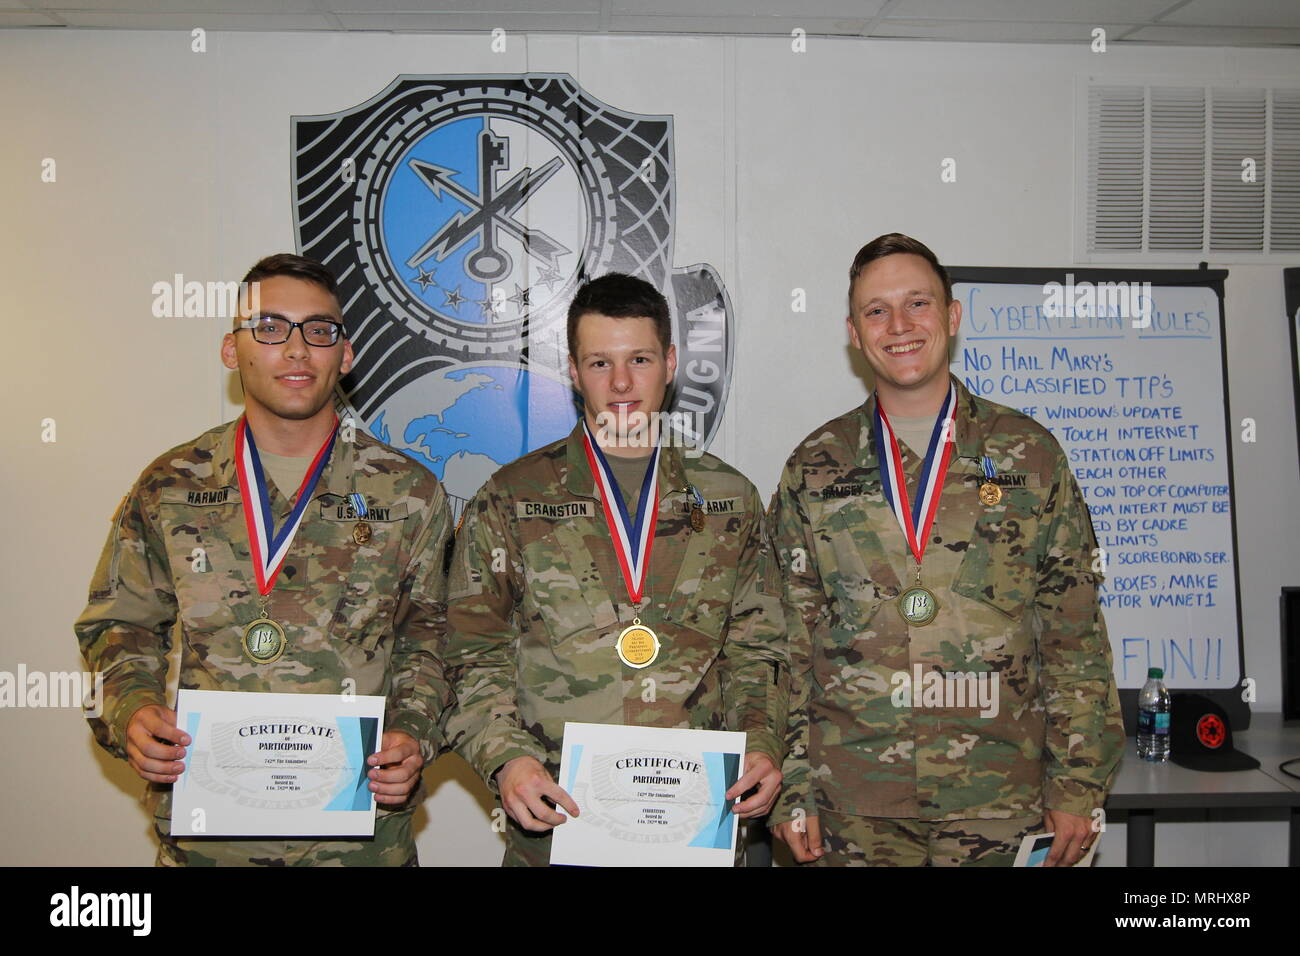 FORT GEORGE G. MEADE, Maryland – Team Unkindness, consisting of Spc. Elijah Harmon, Spc. Nicholas Cranston, and Pfc. Elijah Frederickson, of the 742nd Military Intelligence (MI) Battalion, 704th MI Brigade, won the 2017 CyberTitan Challenge II competition that took place here on June 16. Their team captain, Sgt. Brandon Bushnell (not pictured), left after the first phase when he was notified his wife was in labor. - Stock Image